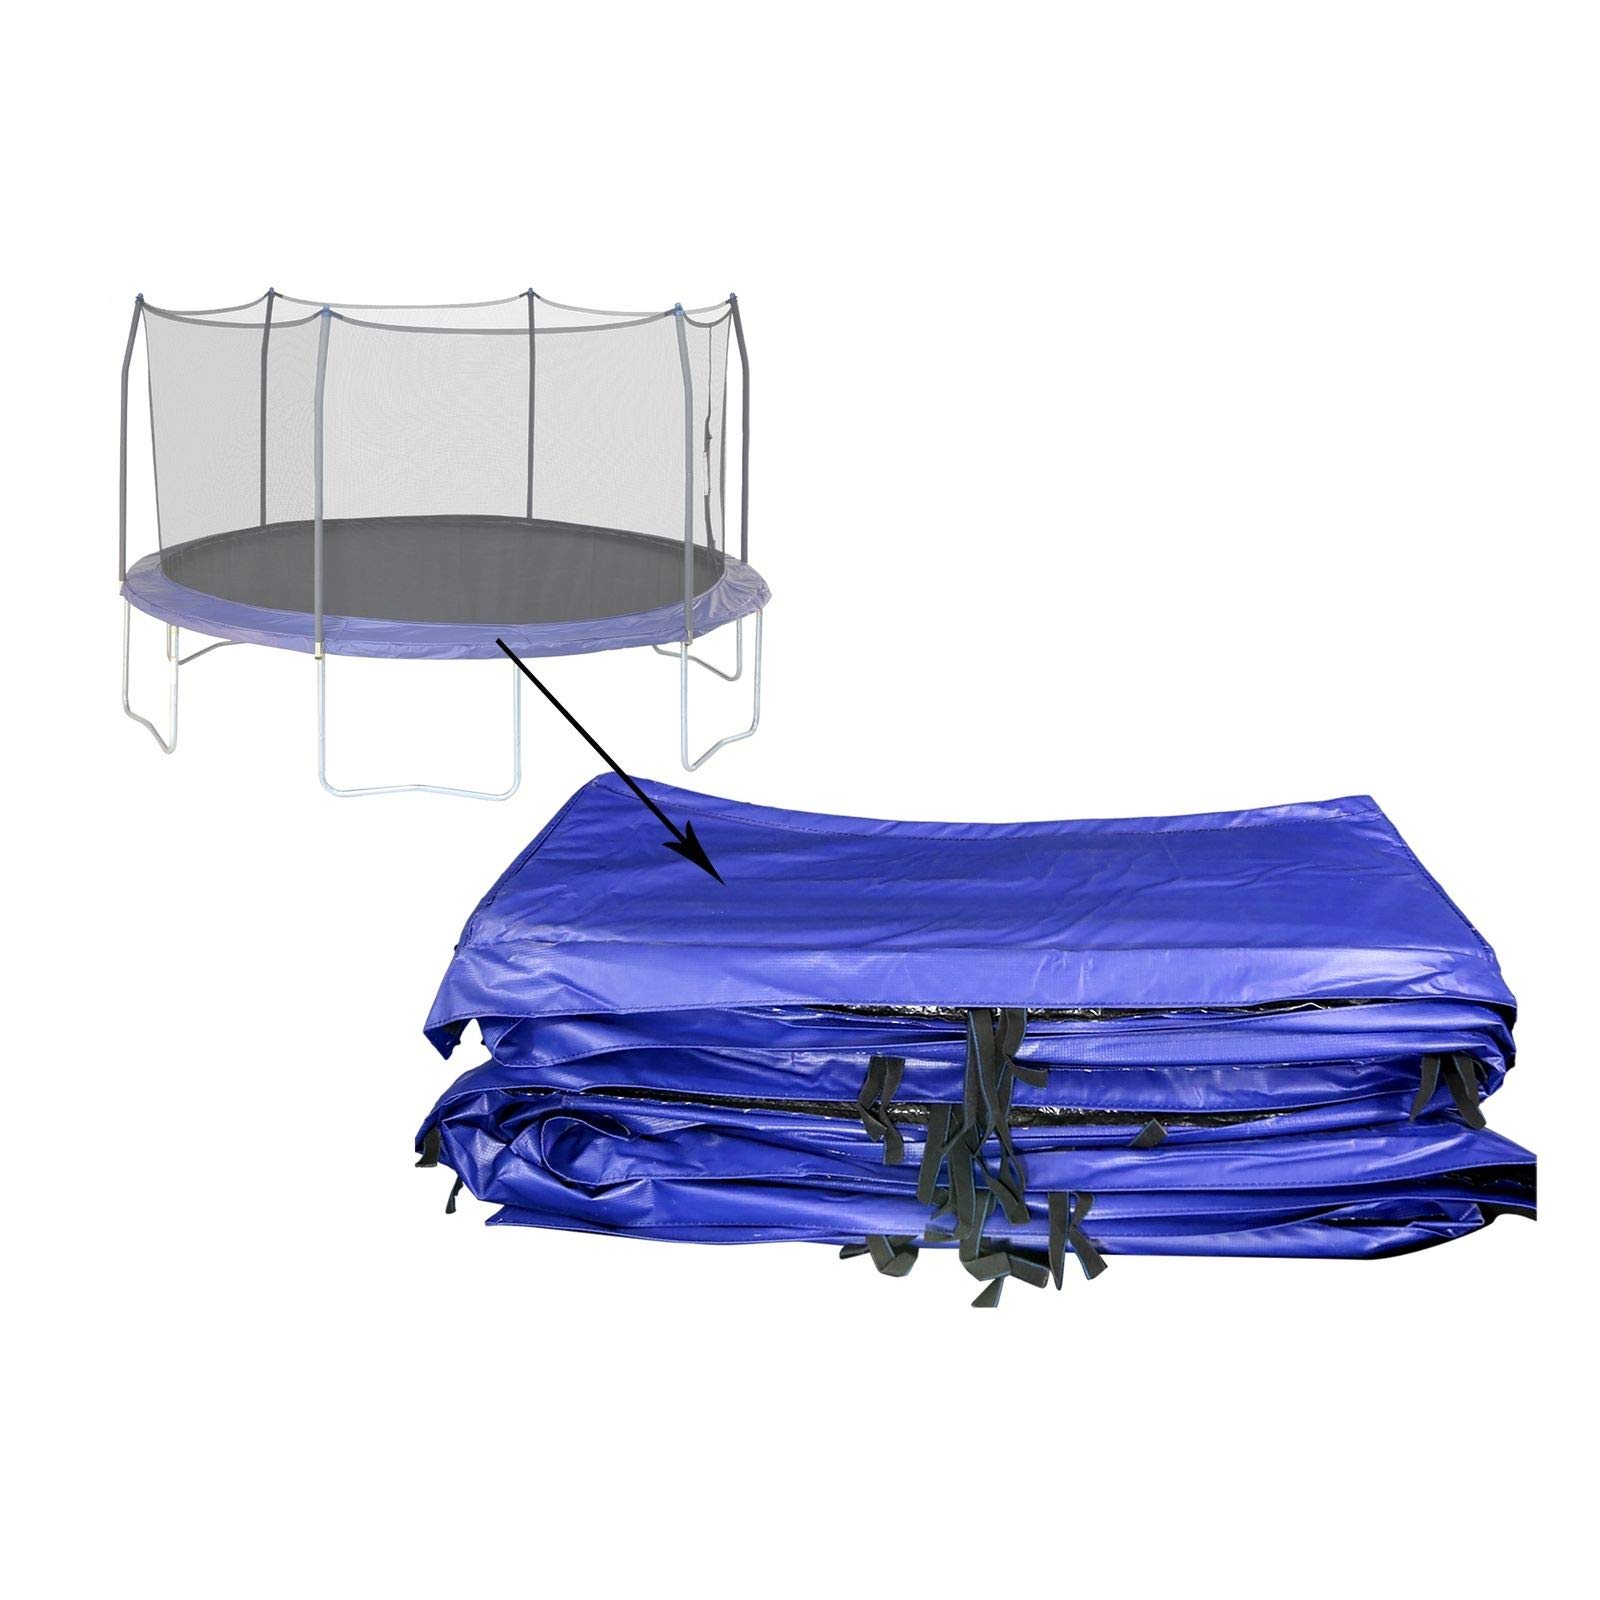 Trampolines Replacement Parts 15 ft Skywalker Accesories. 15' Round Spring Pad Blue Vinyl-Coated for Trampoline. Ultra High UV Protection. Compatibility SWTC15